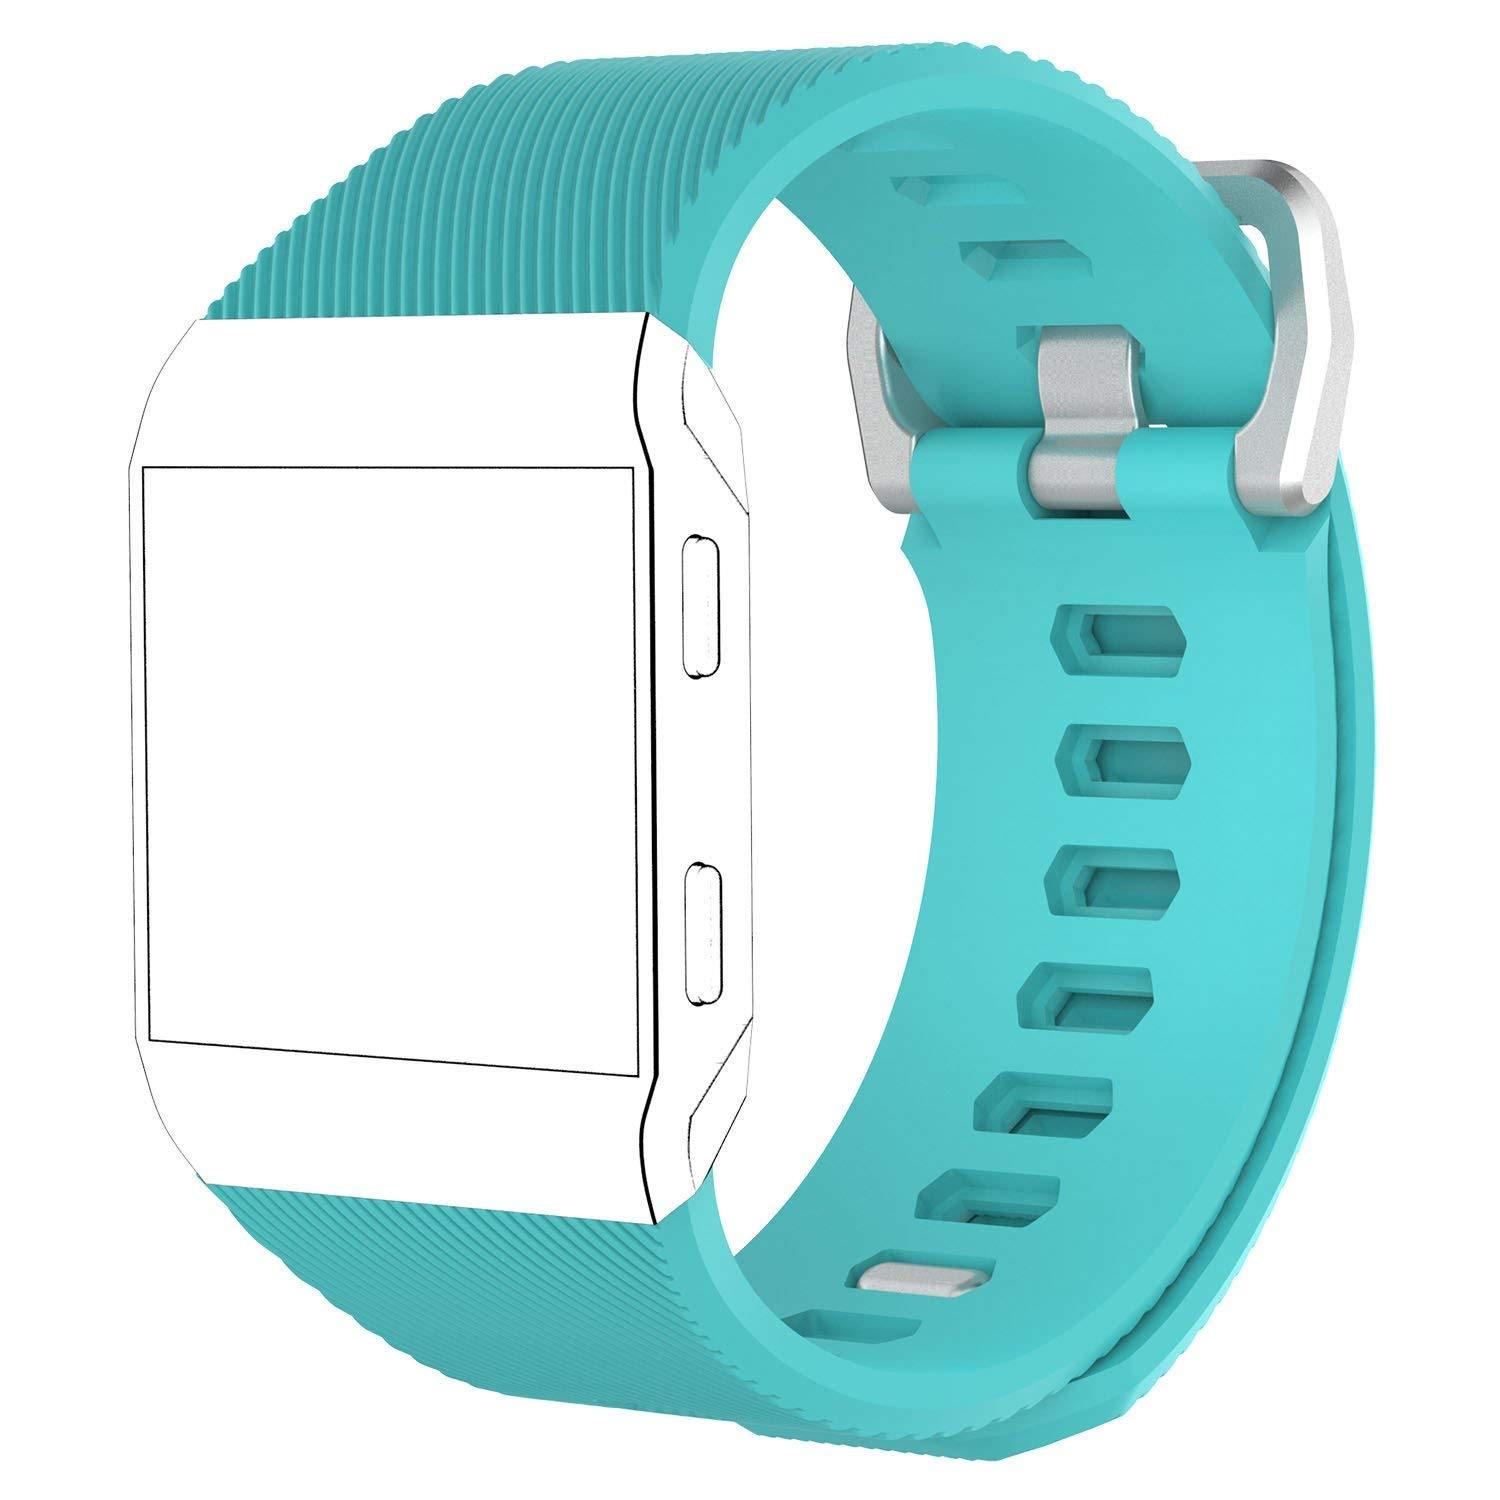 iRECOO-Fitbit Ionic Quick Fit Replacement Bands,Silicone Smart Watch Replacement Bands for Fitbit Ionic. (Mint Green)